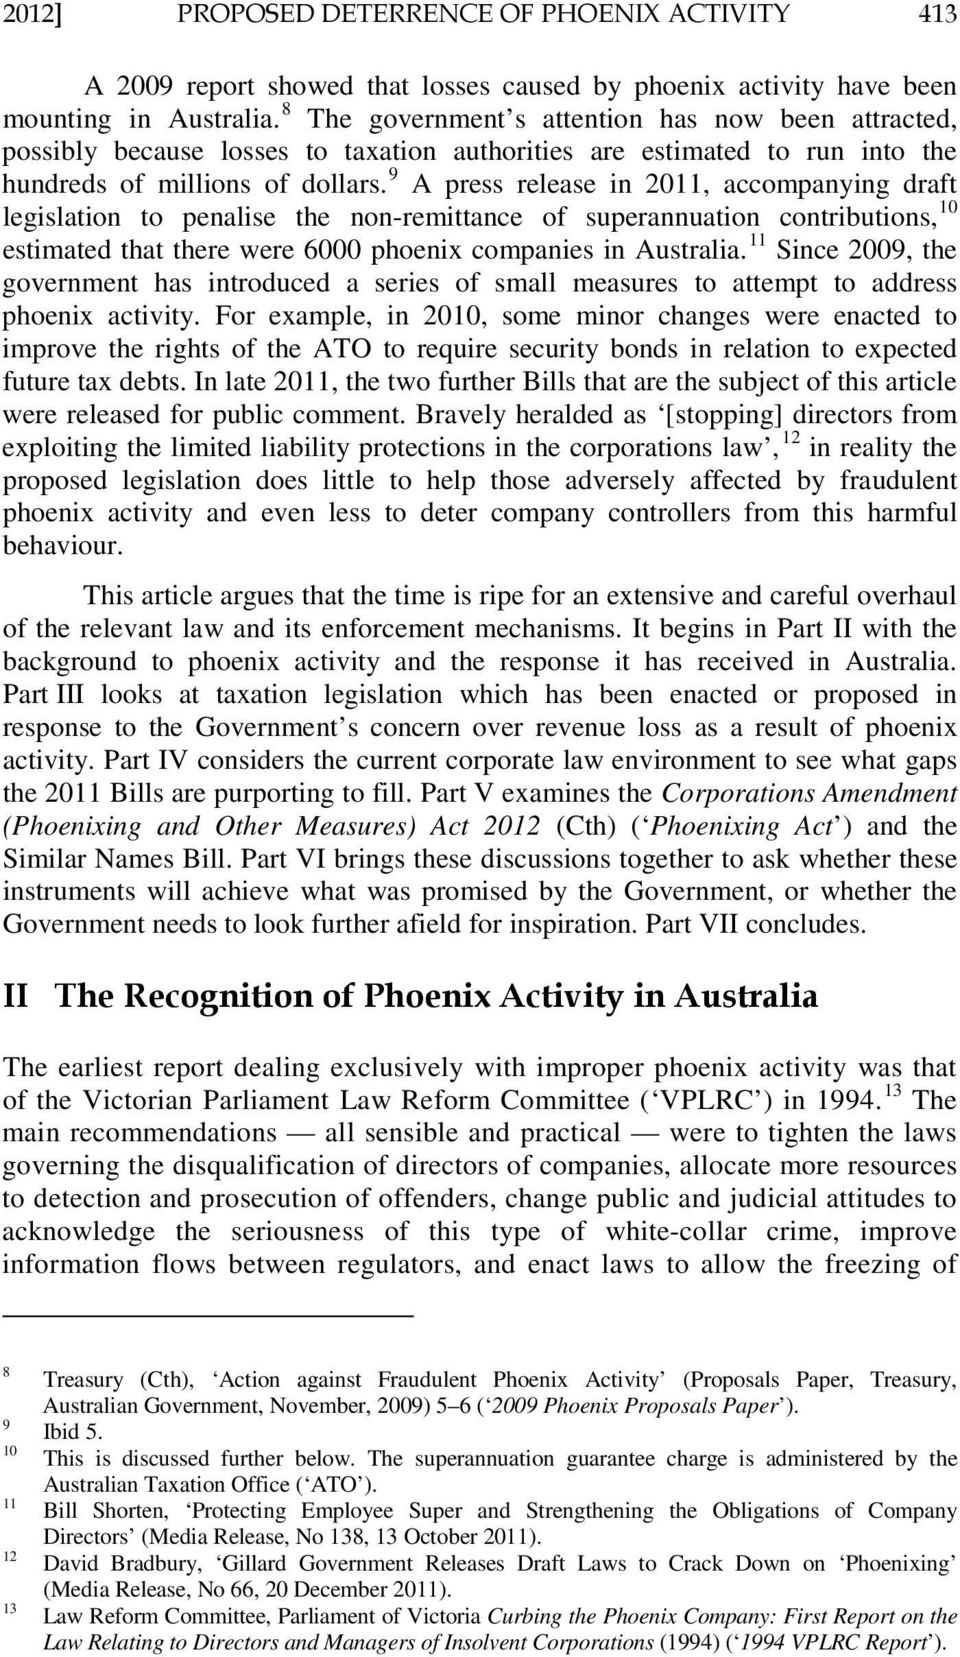 9 A press release in 2011, accompanying draft legislation to penalise the non-remittance of superannuation contributions, 10 estimated that there were 6000 phoenix companies in Australia.